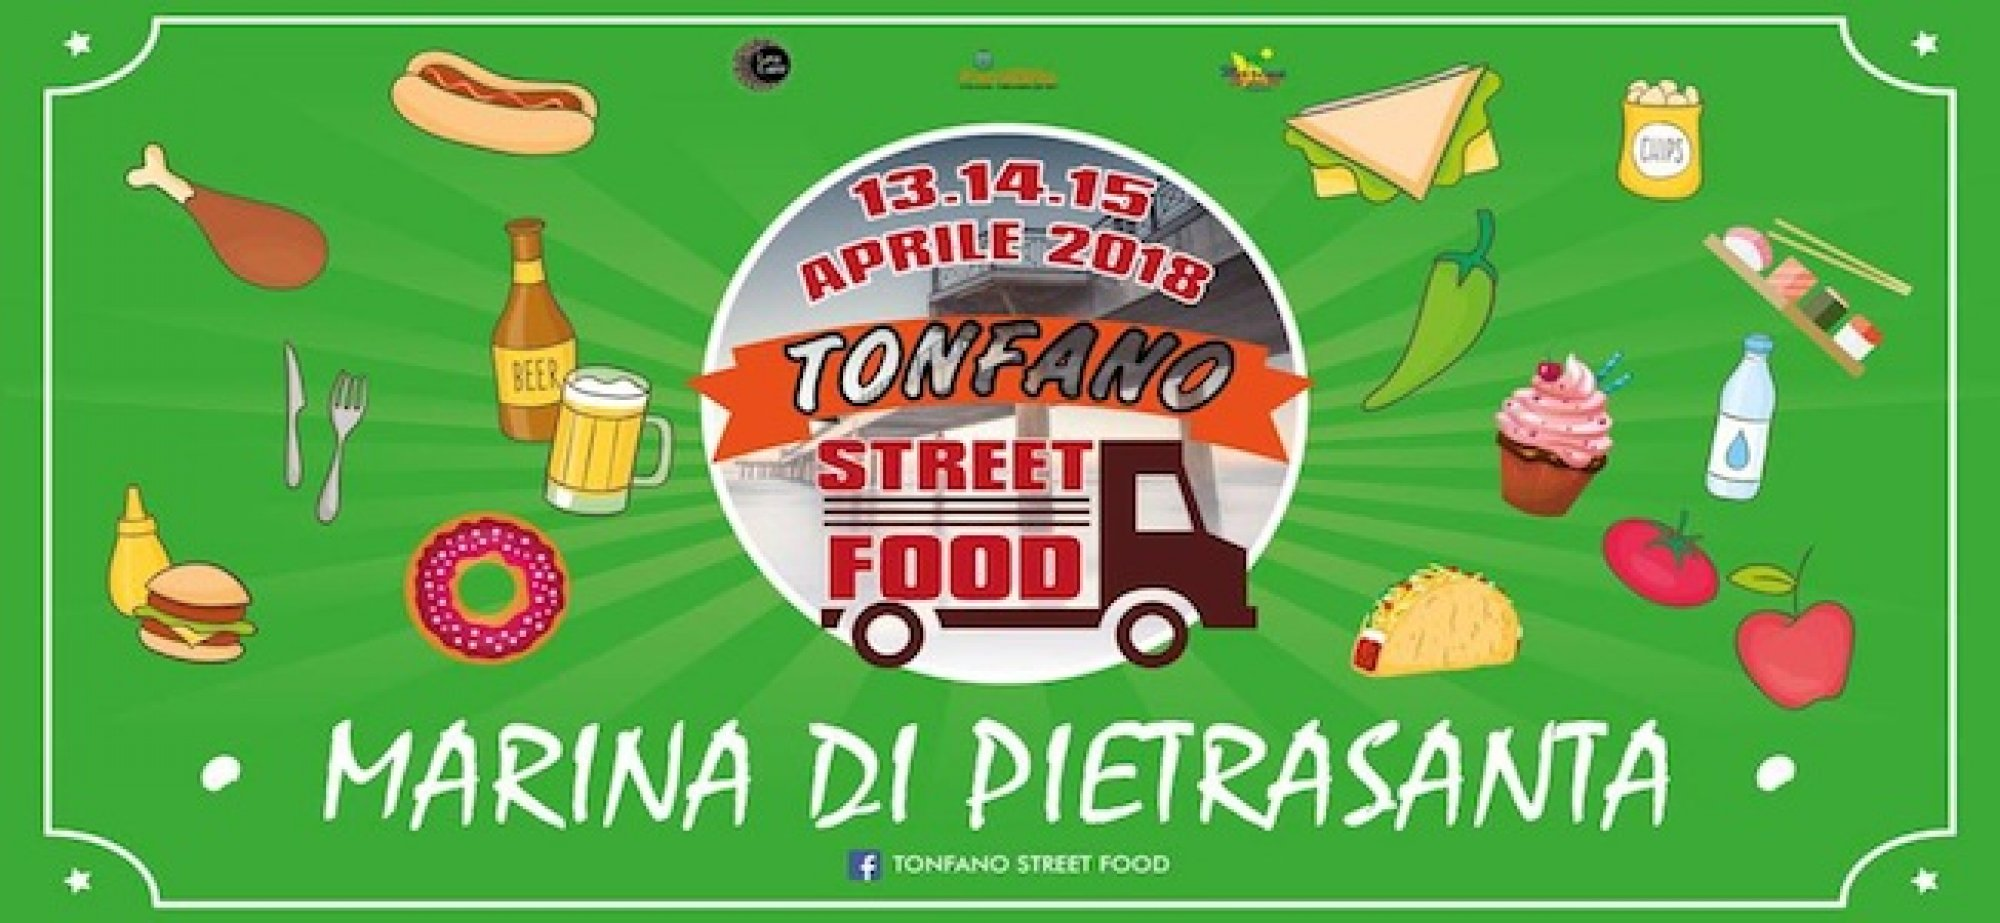 TONFANO STREET FOOD